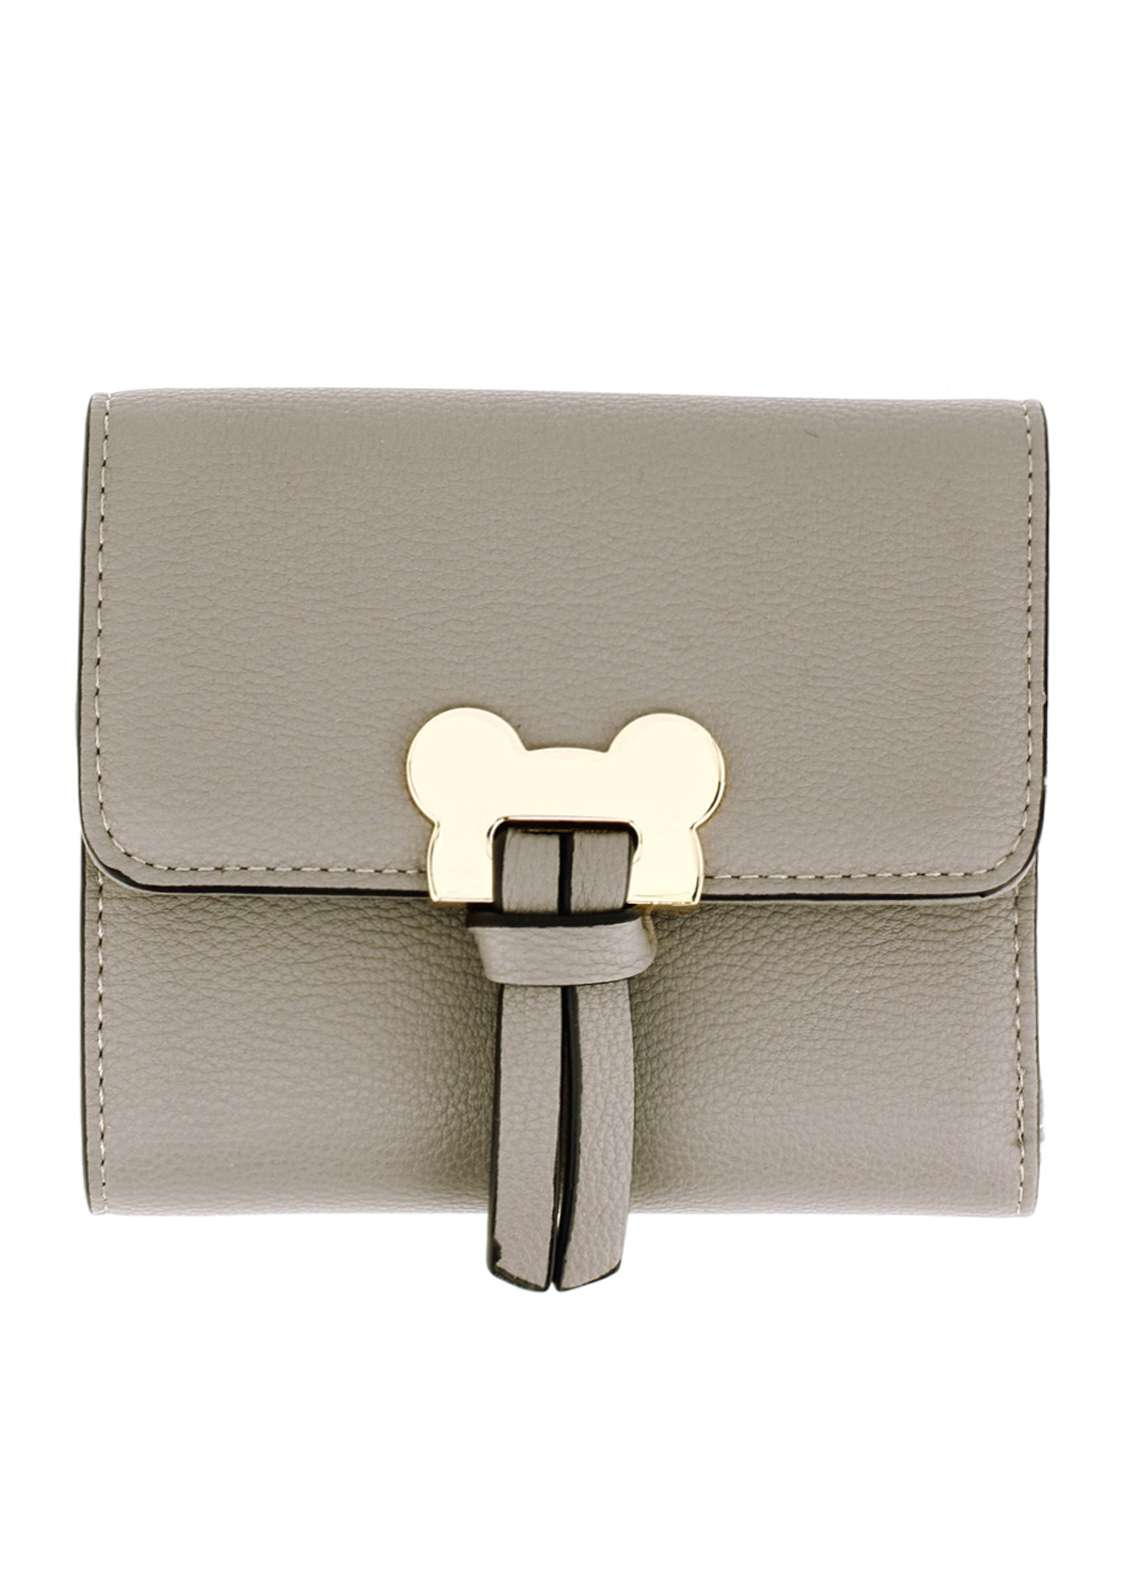 Anna Grace London Faux Leather Flap Purse Wallets for Women Grey with Gold Metal Work